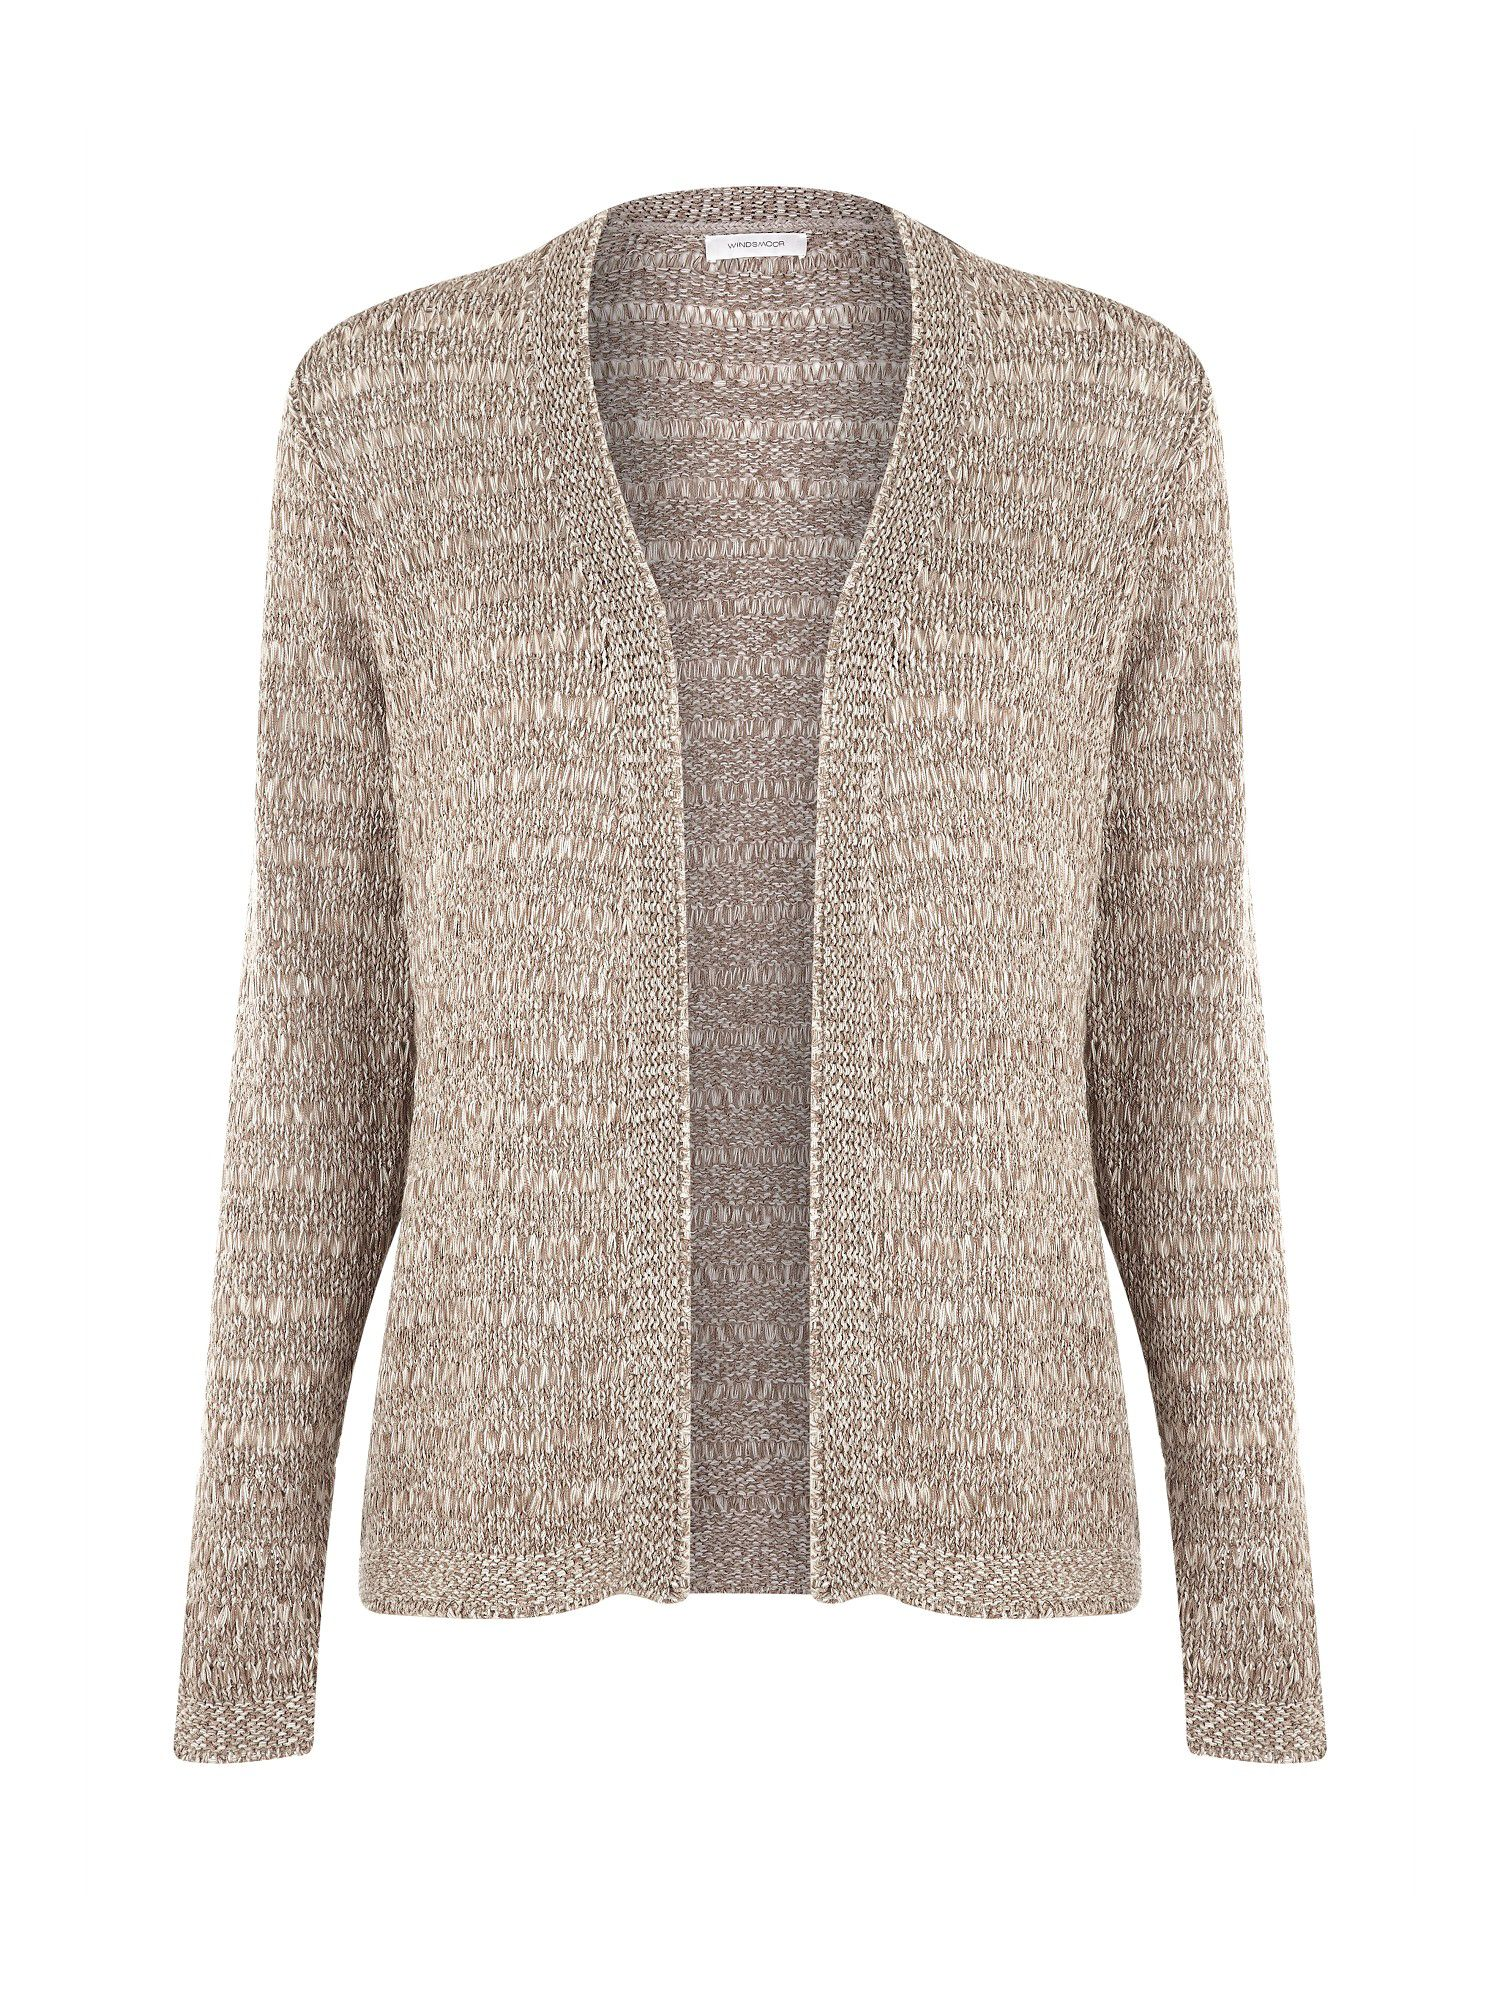 Caramel textured cardigan